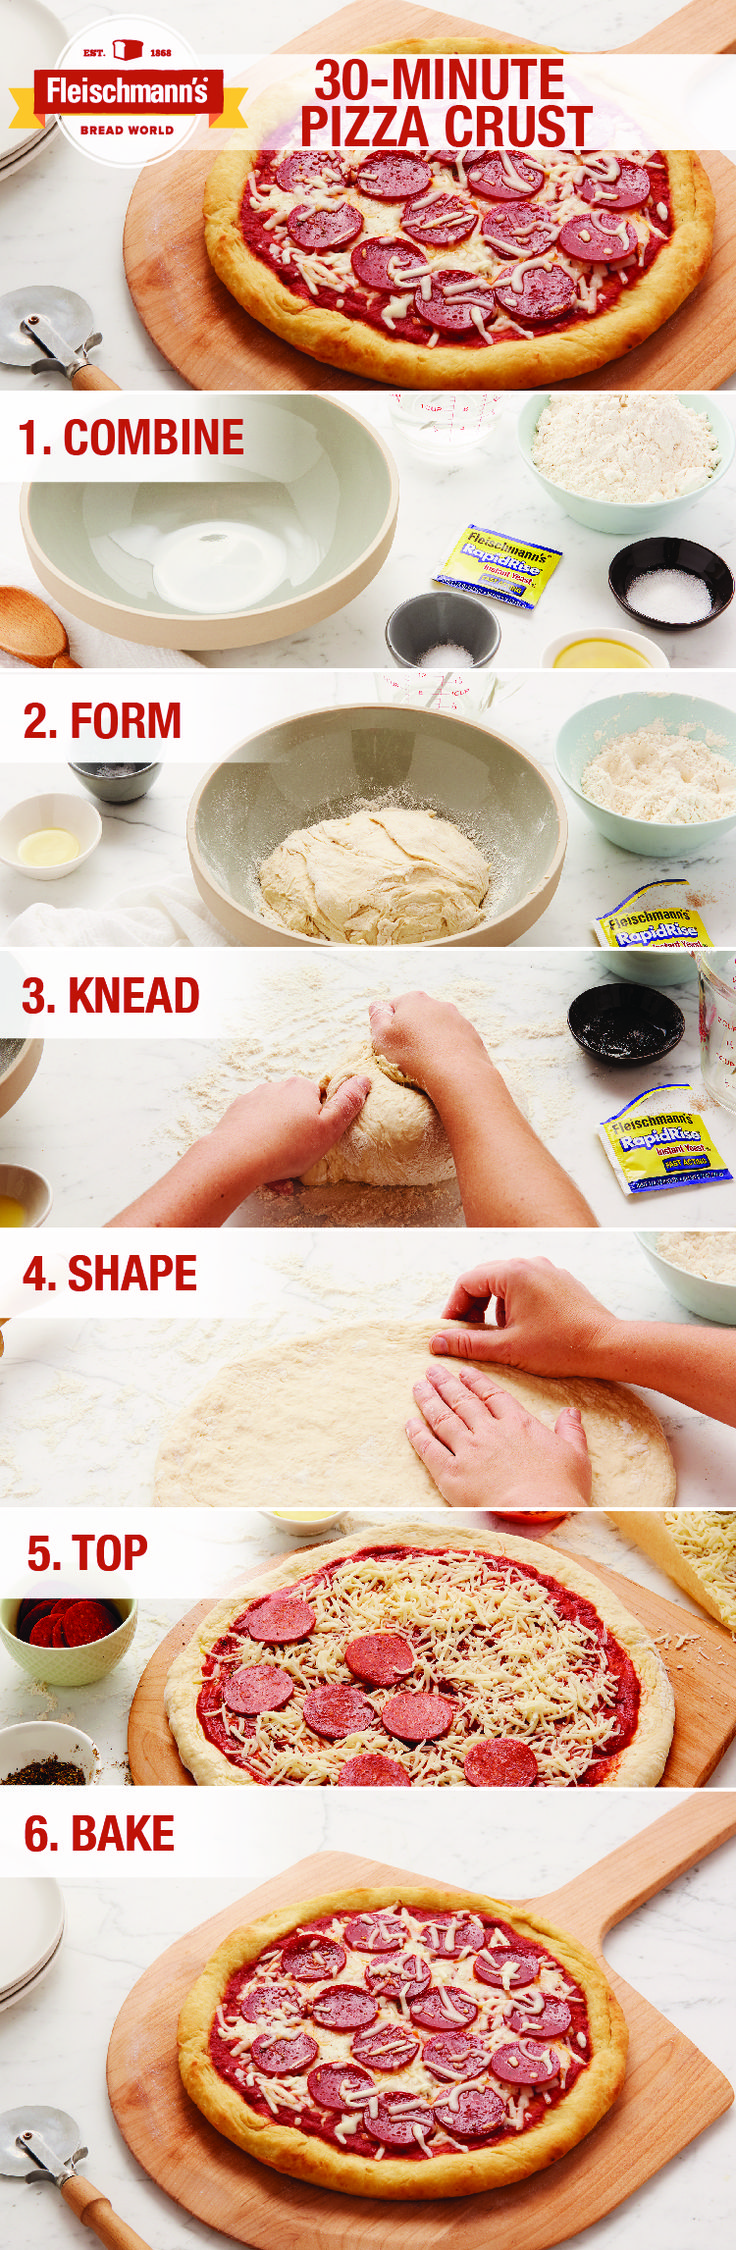 15 best step by step recipes images on pinterest breads 30 minute pizza crust making homemade pizzahomade pizza recipeshow forumfinder Image collections